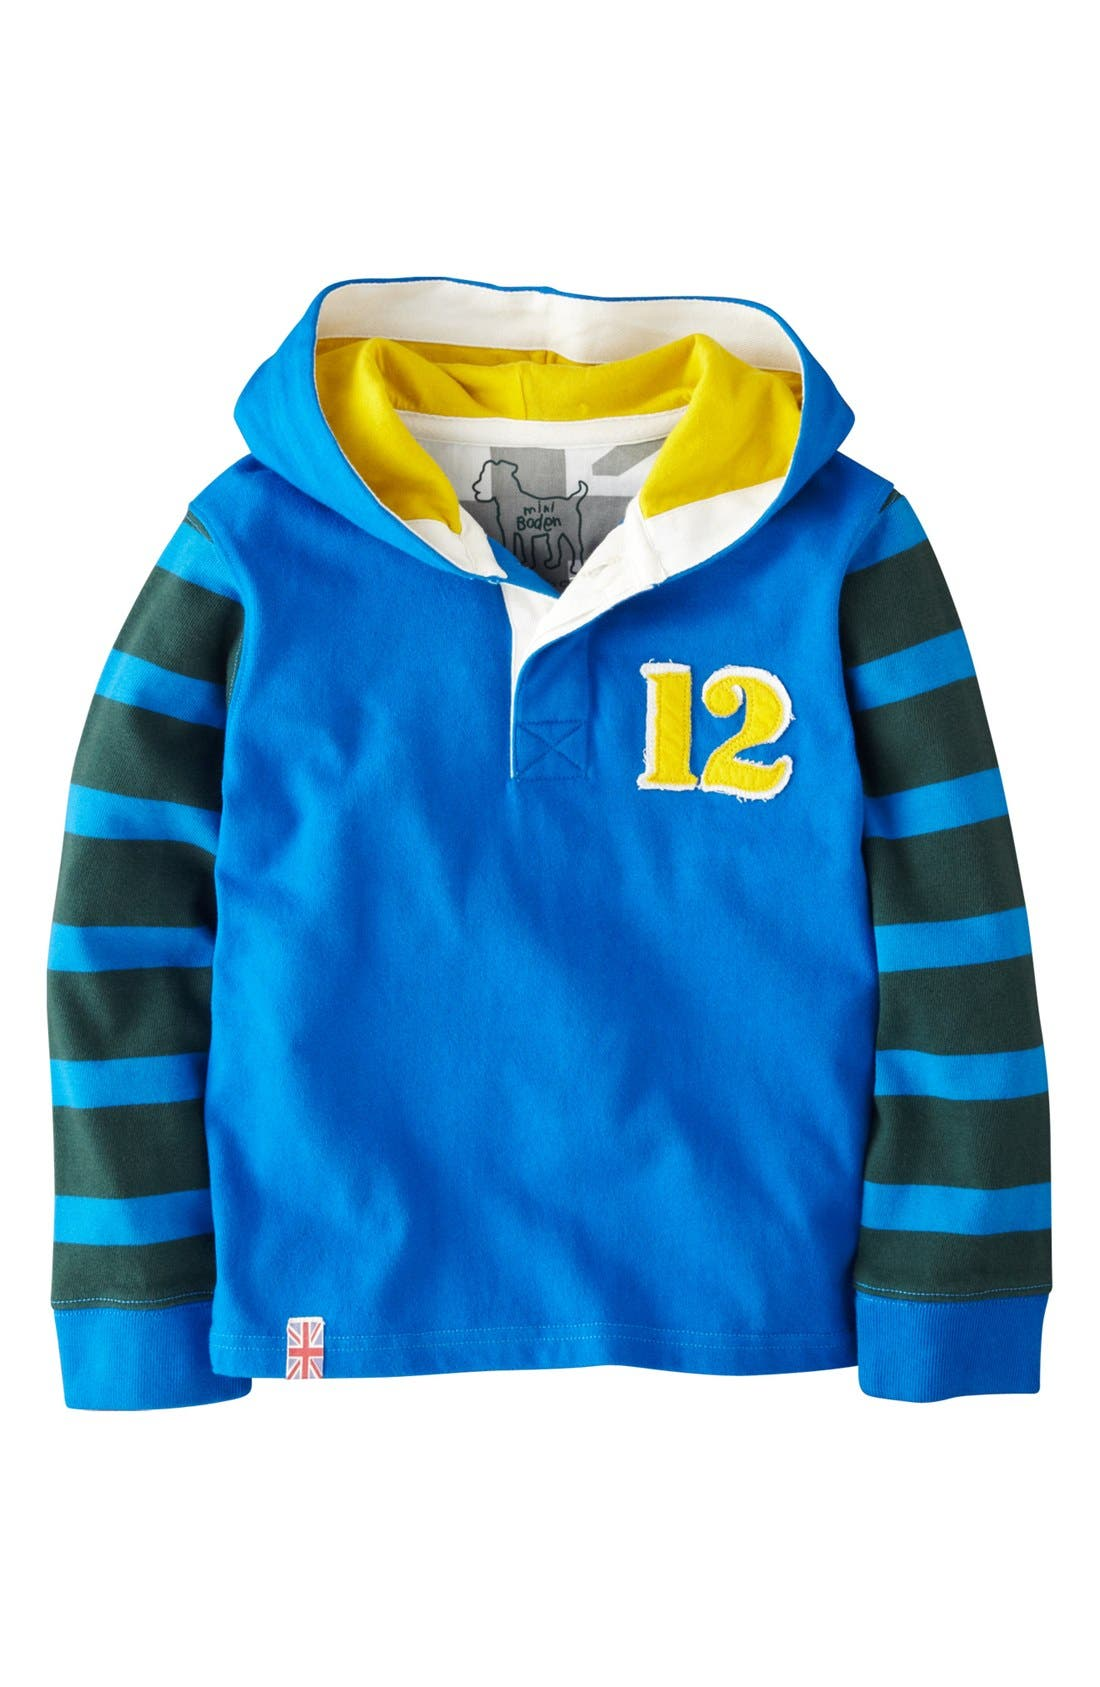 Alternate Image 1 Selected - Mini Boden Hooded Rugby Pullover (Toddler Boys, Little Boys & Big Boys)